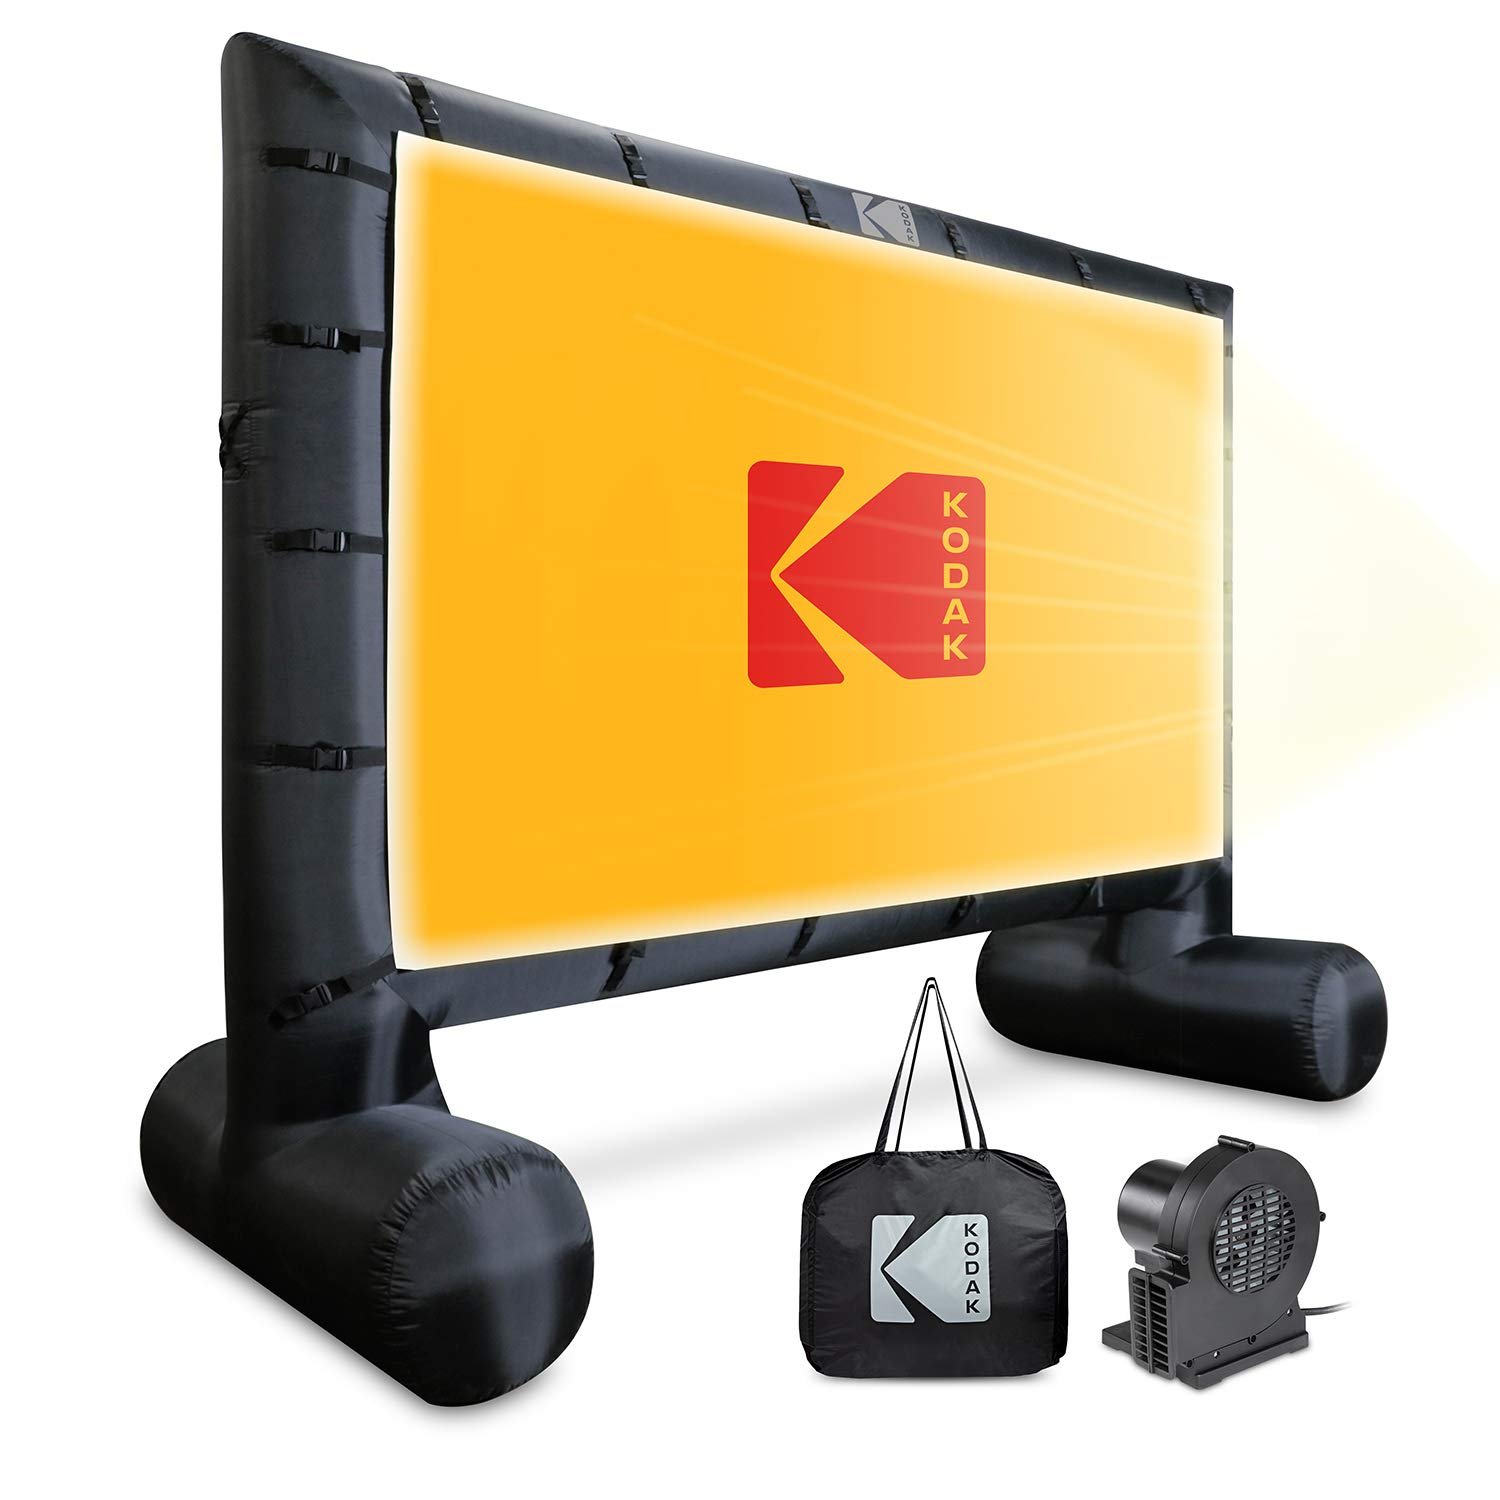 KODAK Inflatable Outdoor Projector Screen | 14.5 Feet, Blow-Up Screen for Movies, TV, Sports Games & More | Includes Air Pump, Storage Carry Case, Stakes, Repair Patches by KODAK